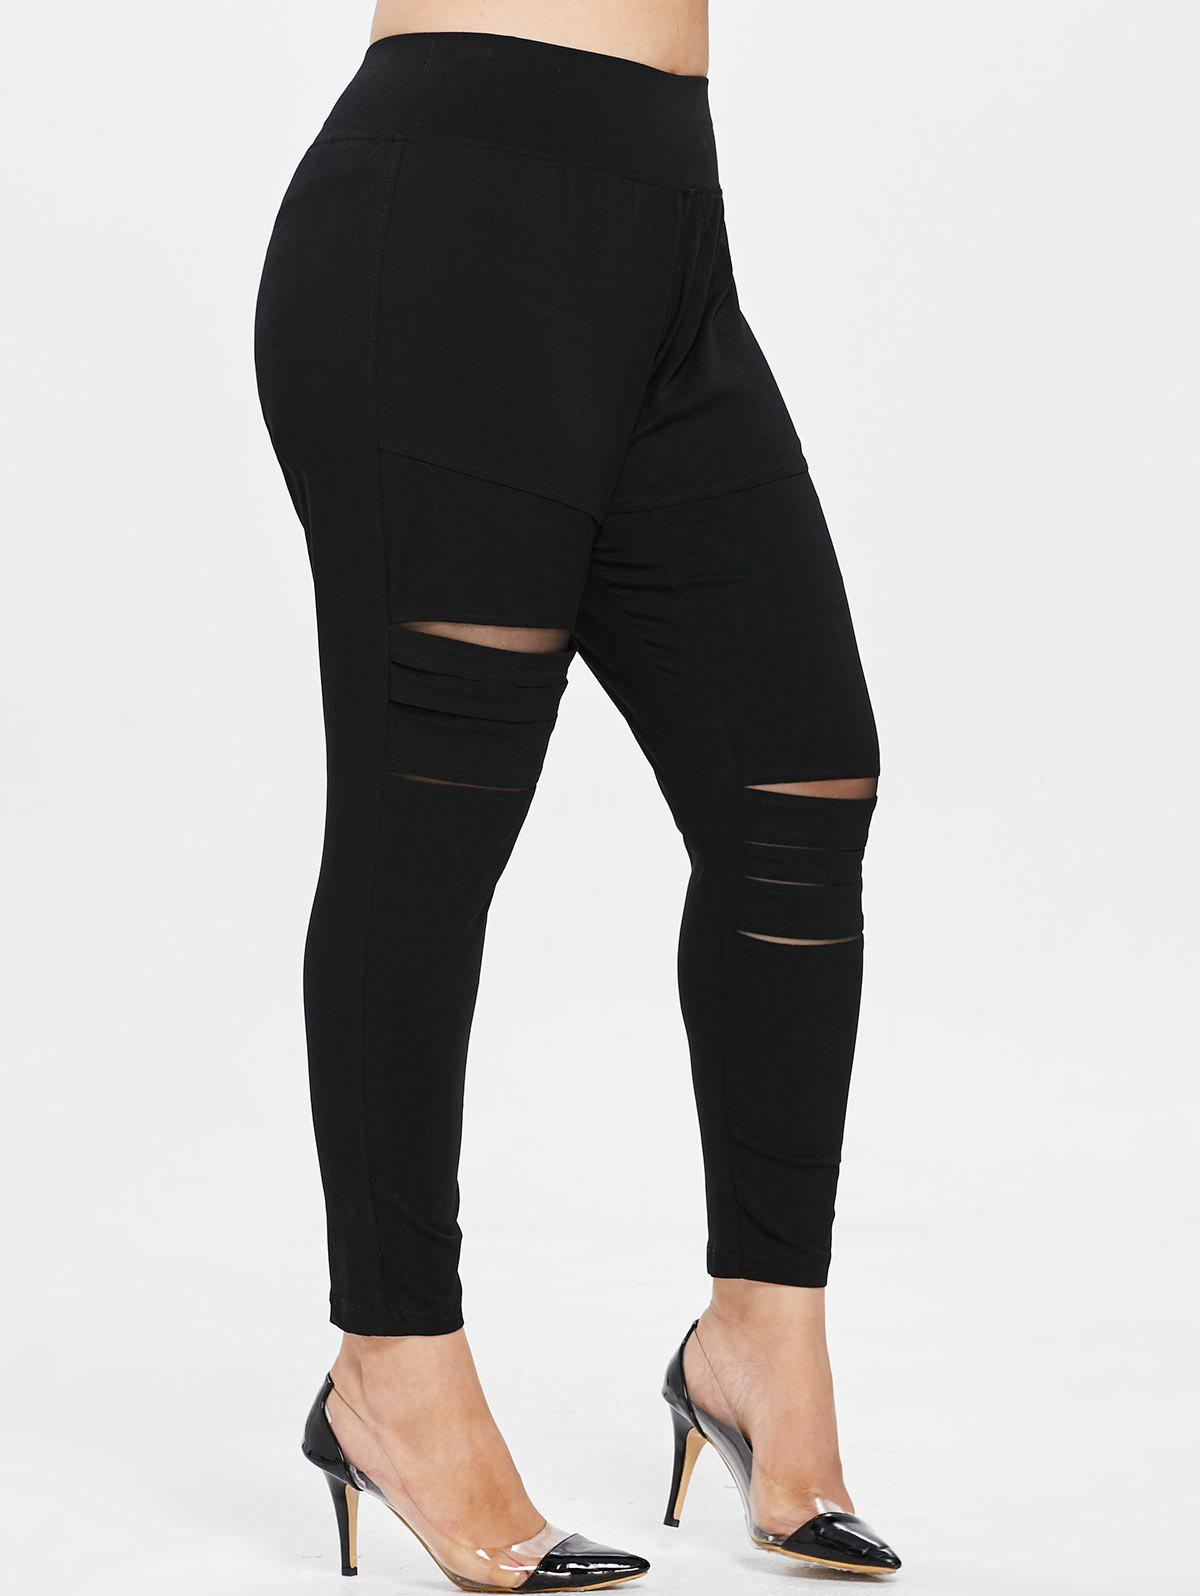 Discount Distressed Plus Size Elastic Waist Leggings